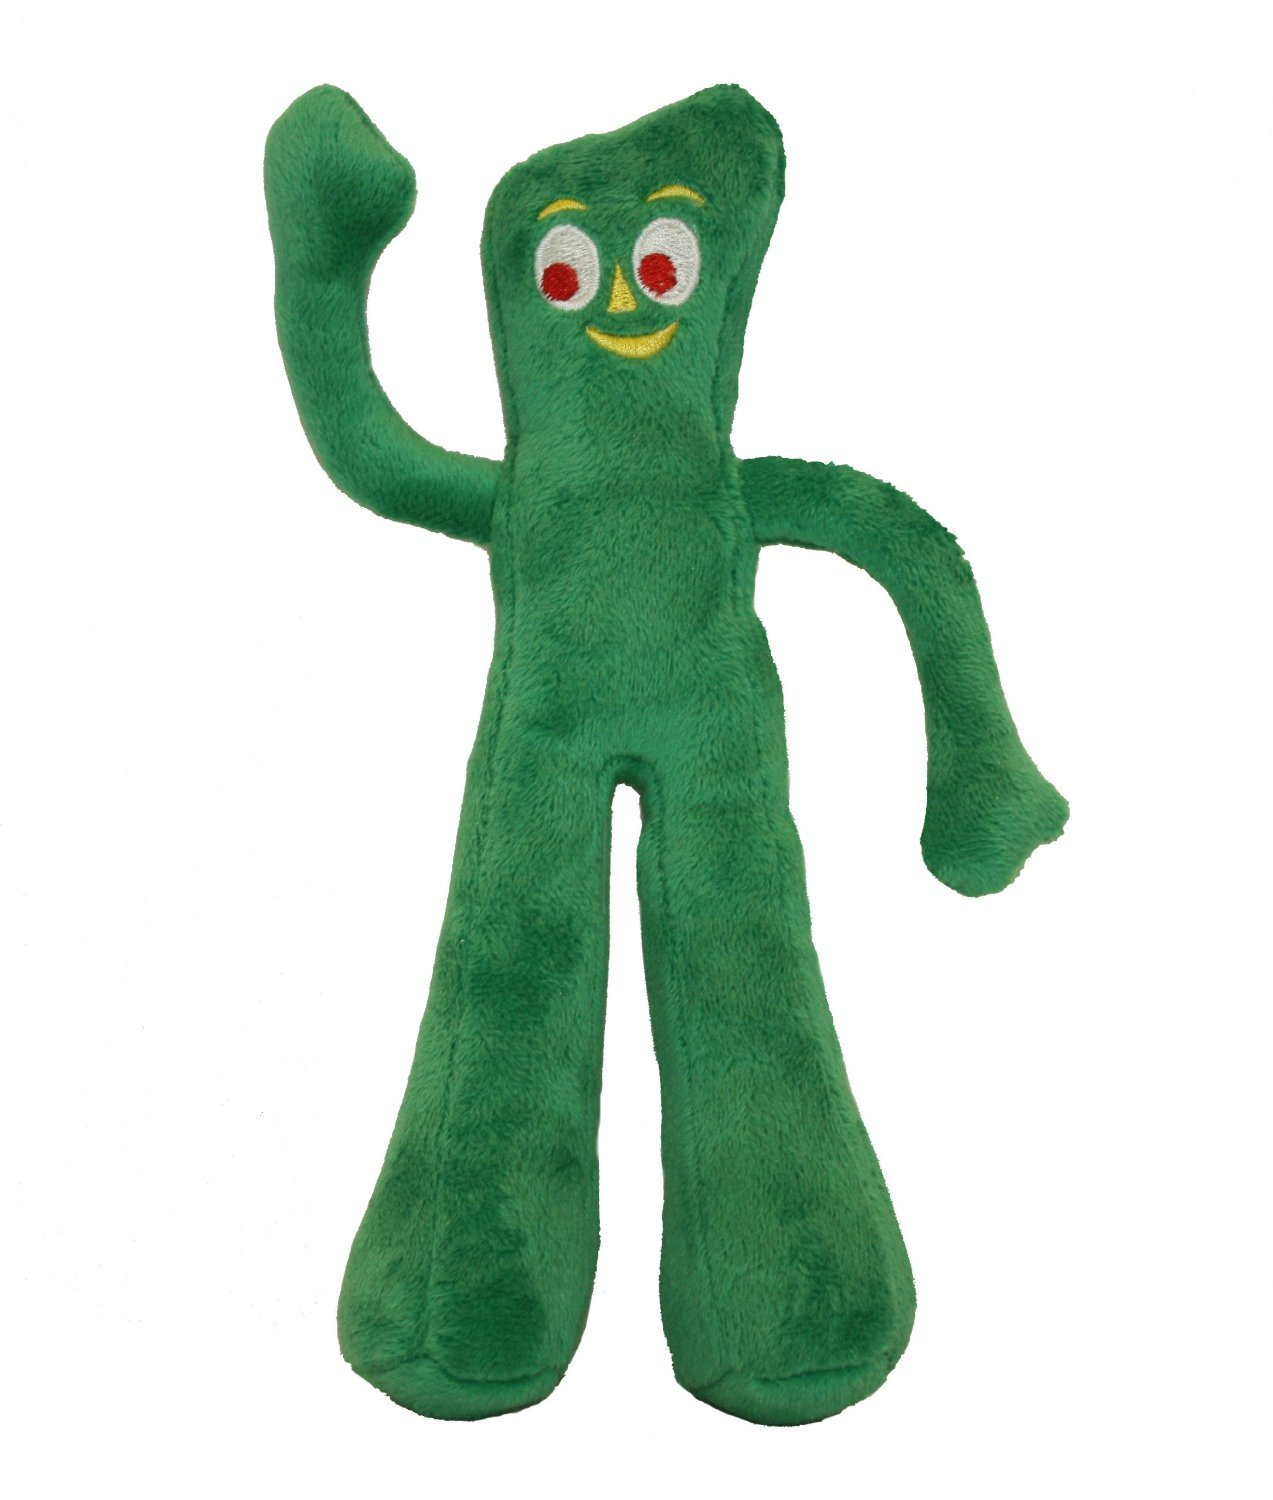 gumby dog toy green